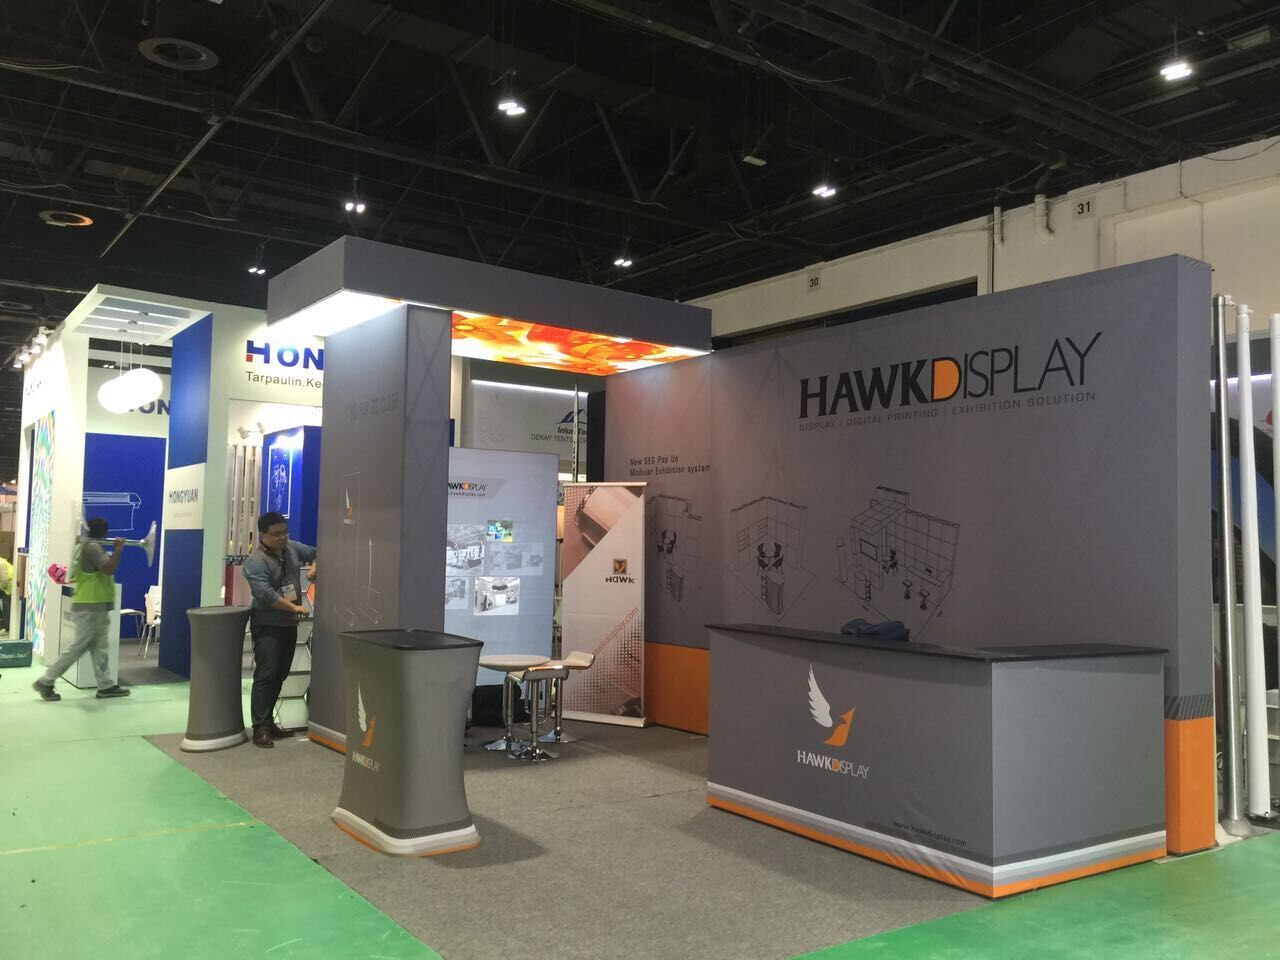 Portable Exhibition Stands Dubai : Trade show booth of hawk display in past sgi dubai this is a